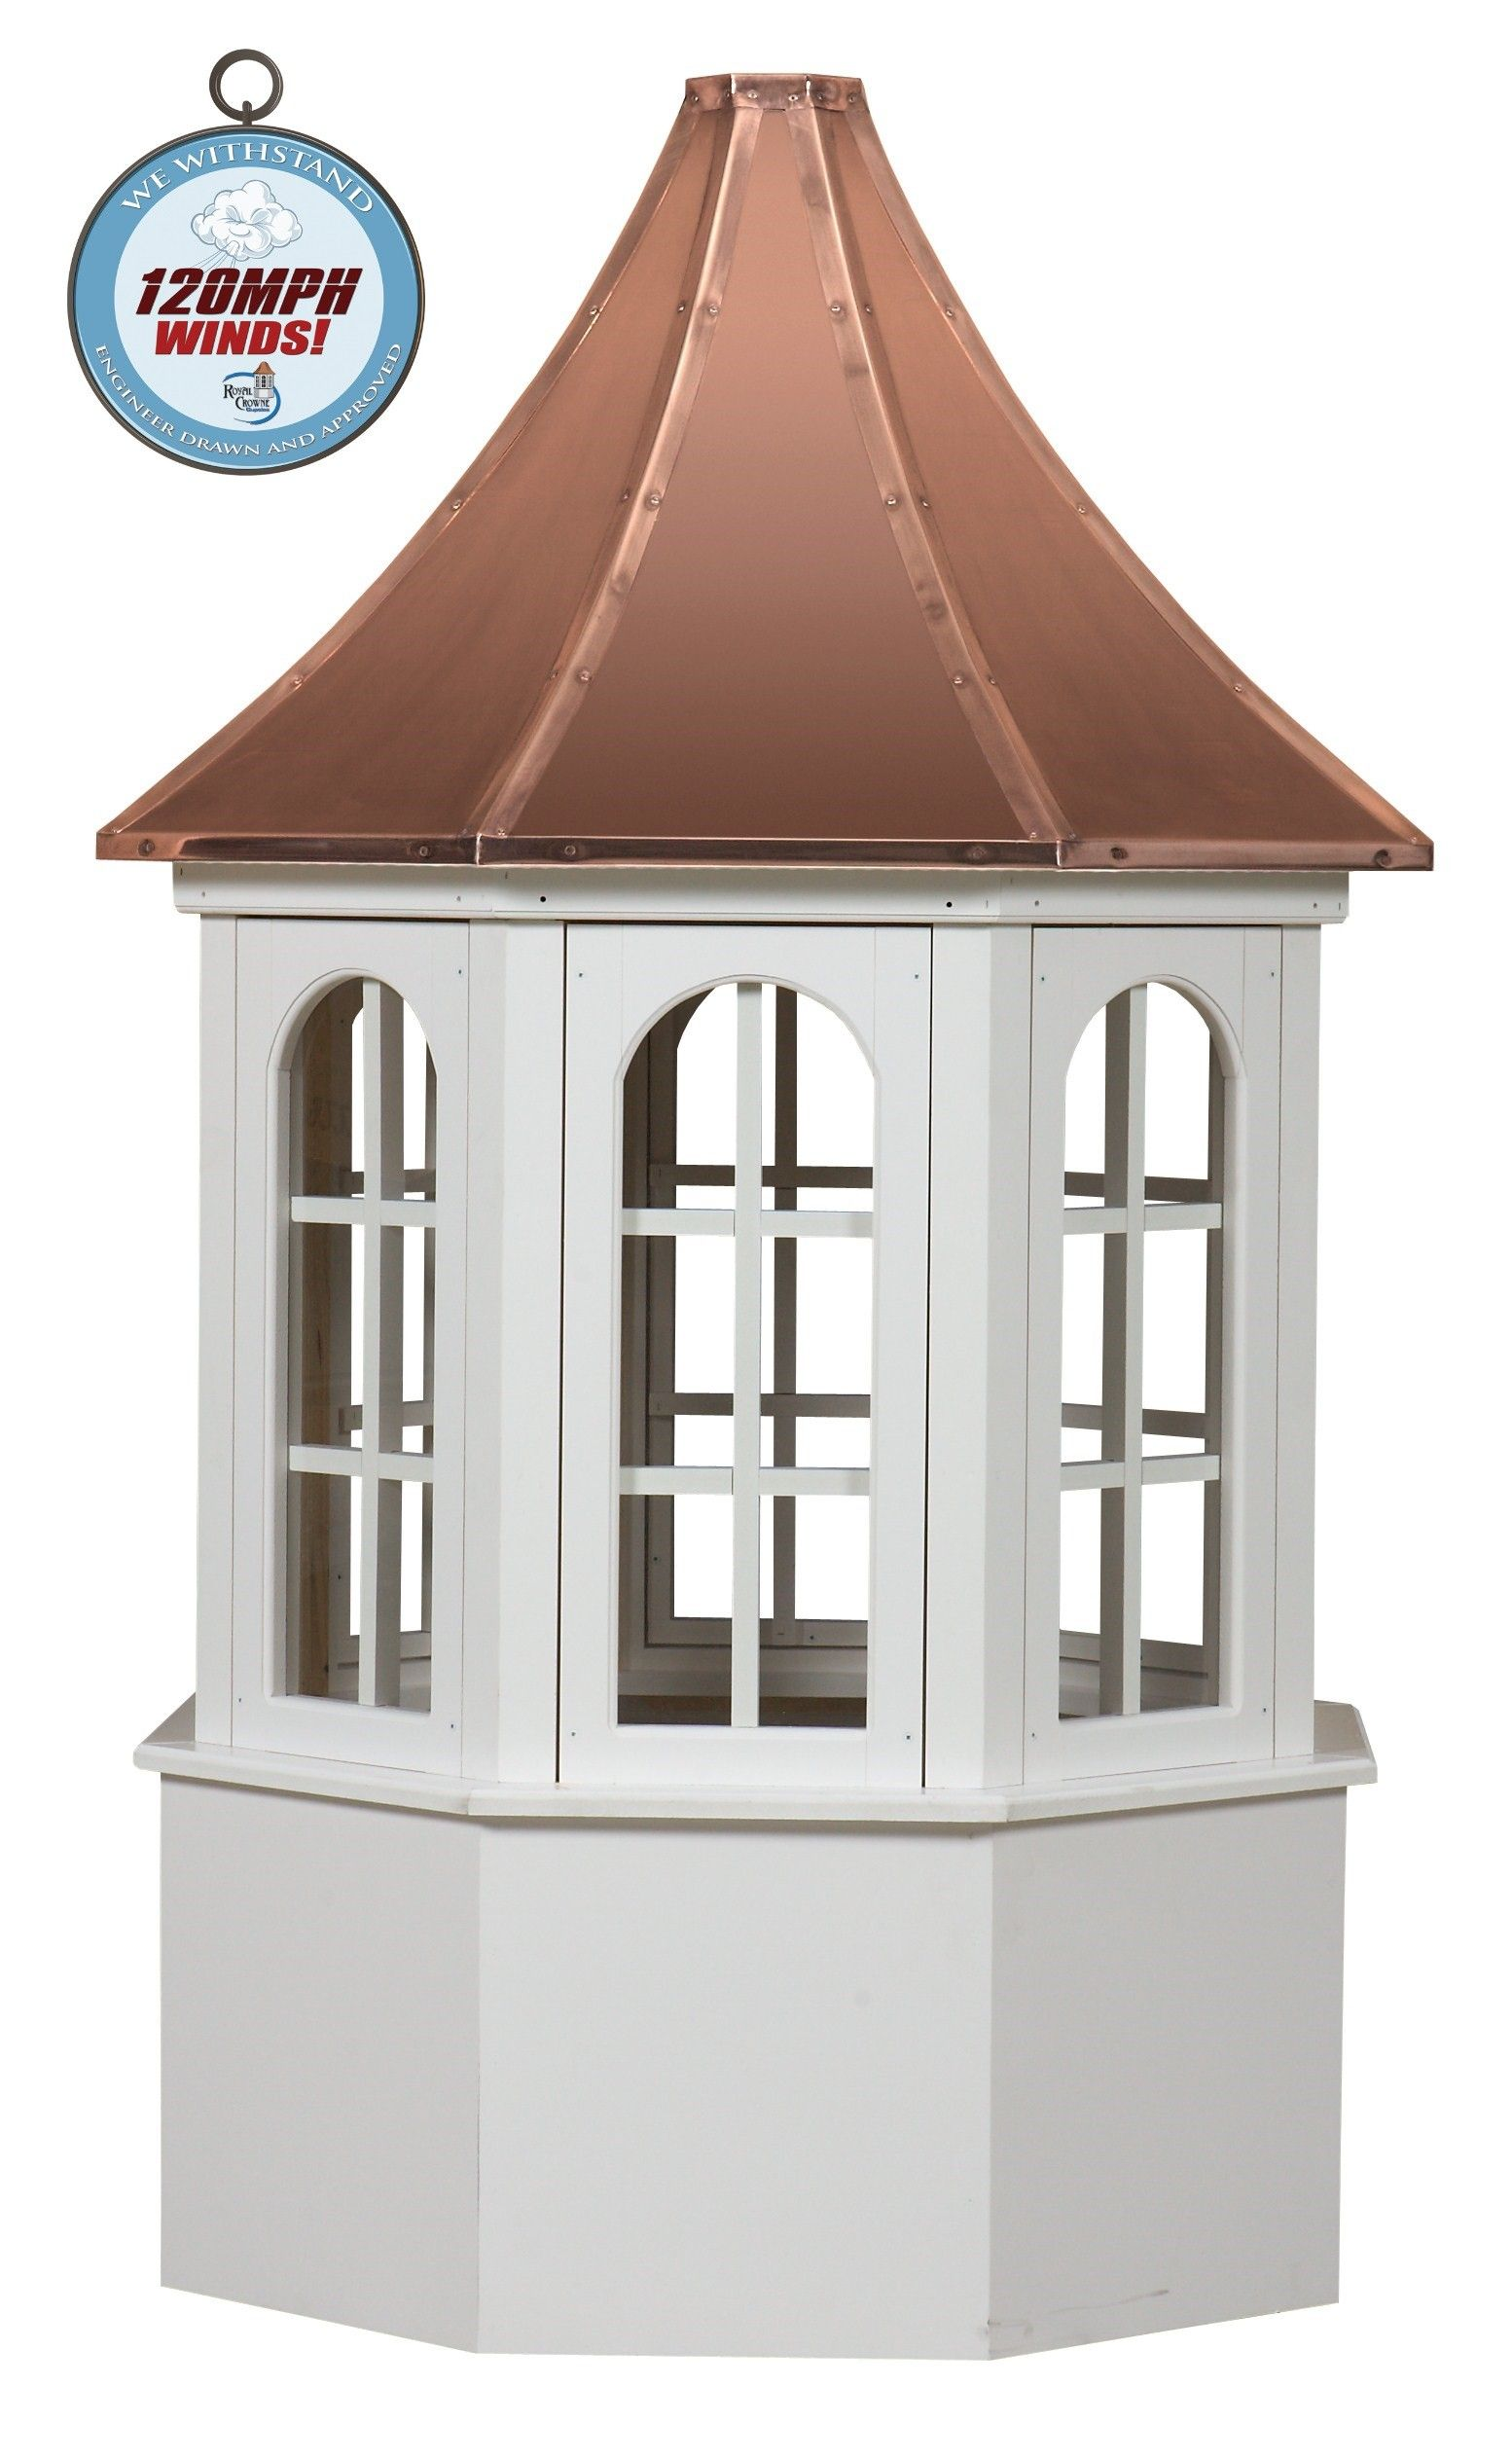 Salisbury cupolas (s2s) in 2020 | Shed plans, 8x12 shed ...